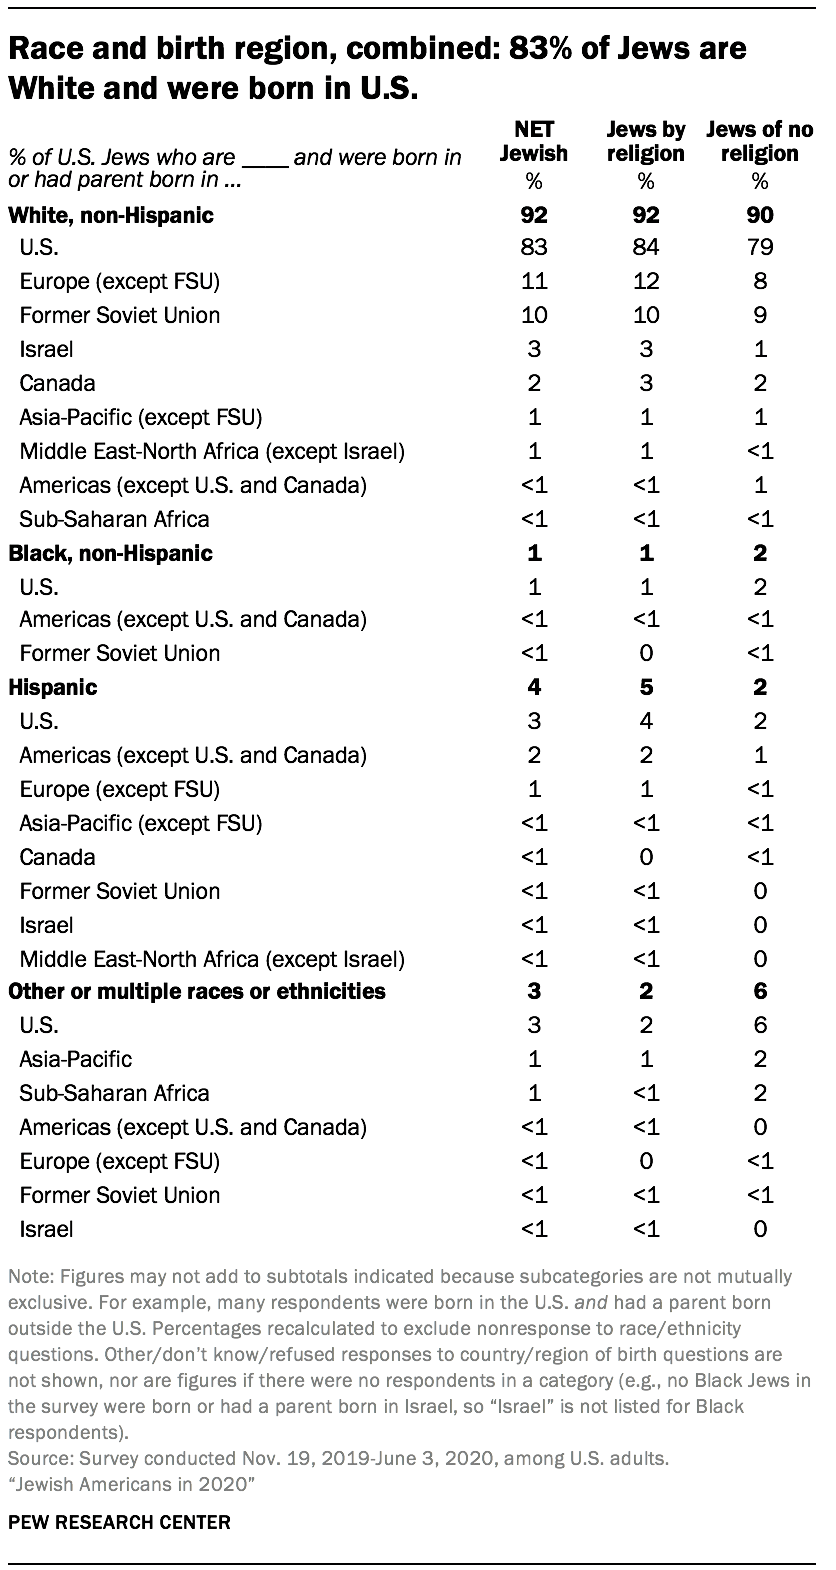 Race and birth region, combined: 83% of Jews are White and were born in U.S.